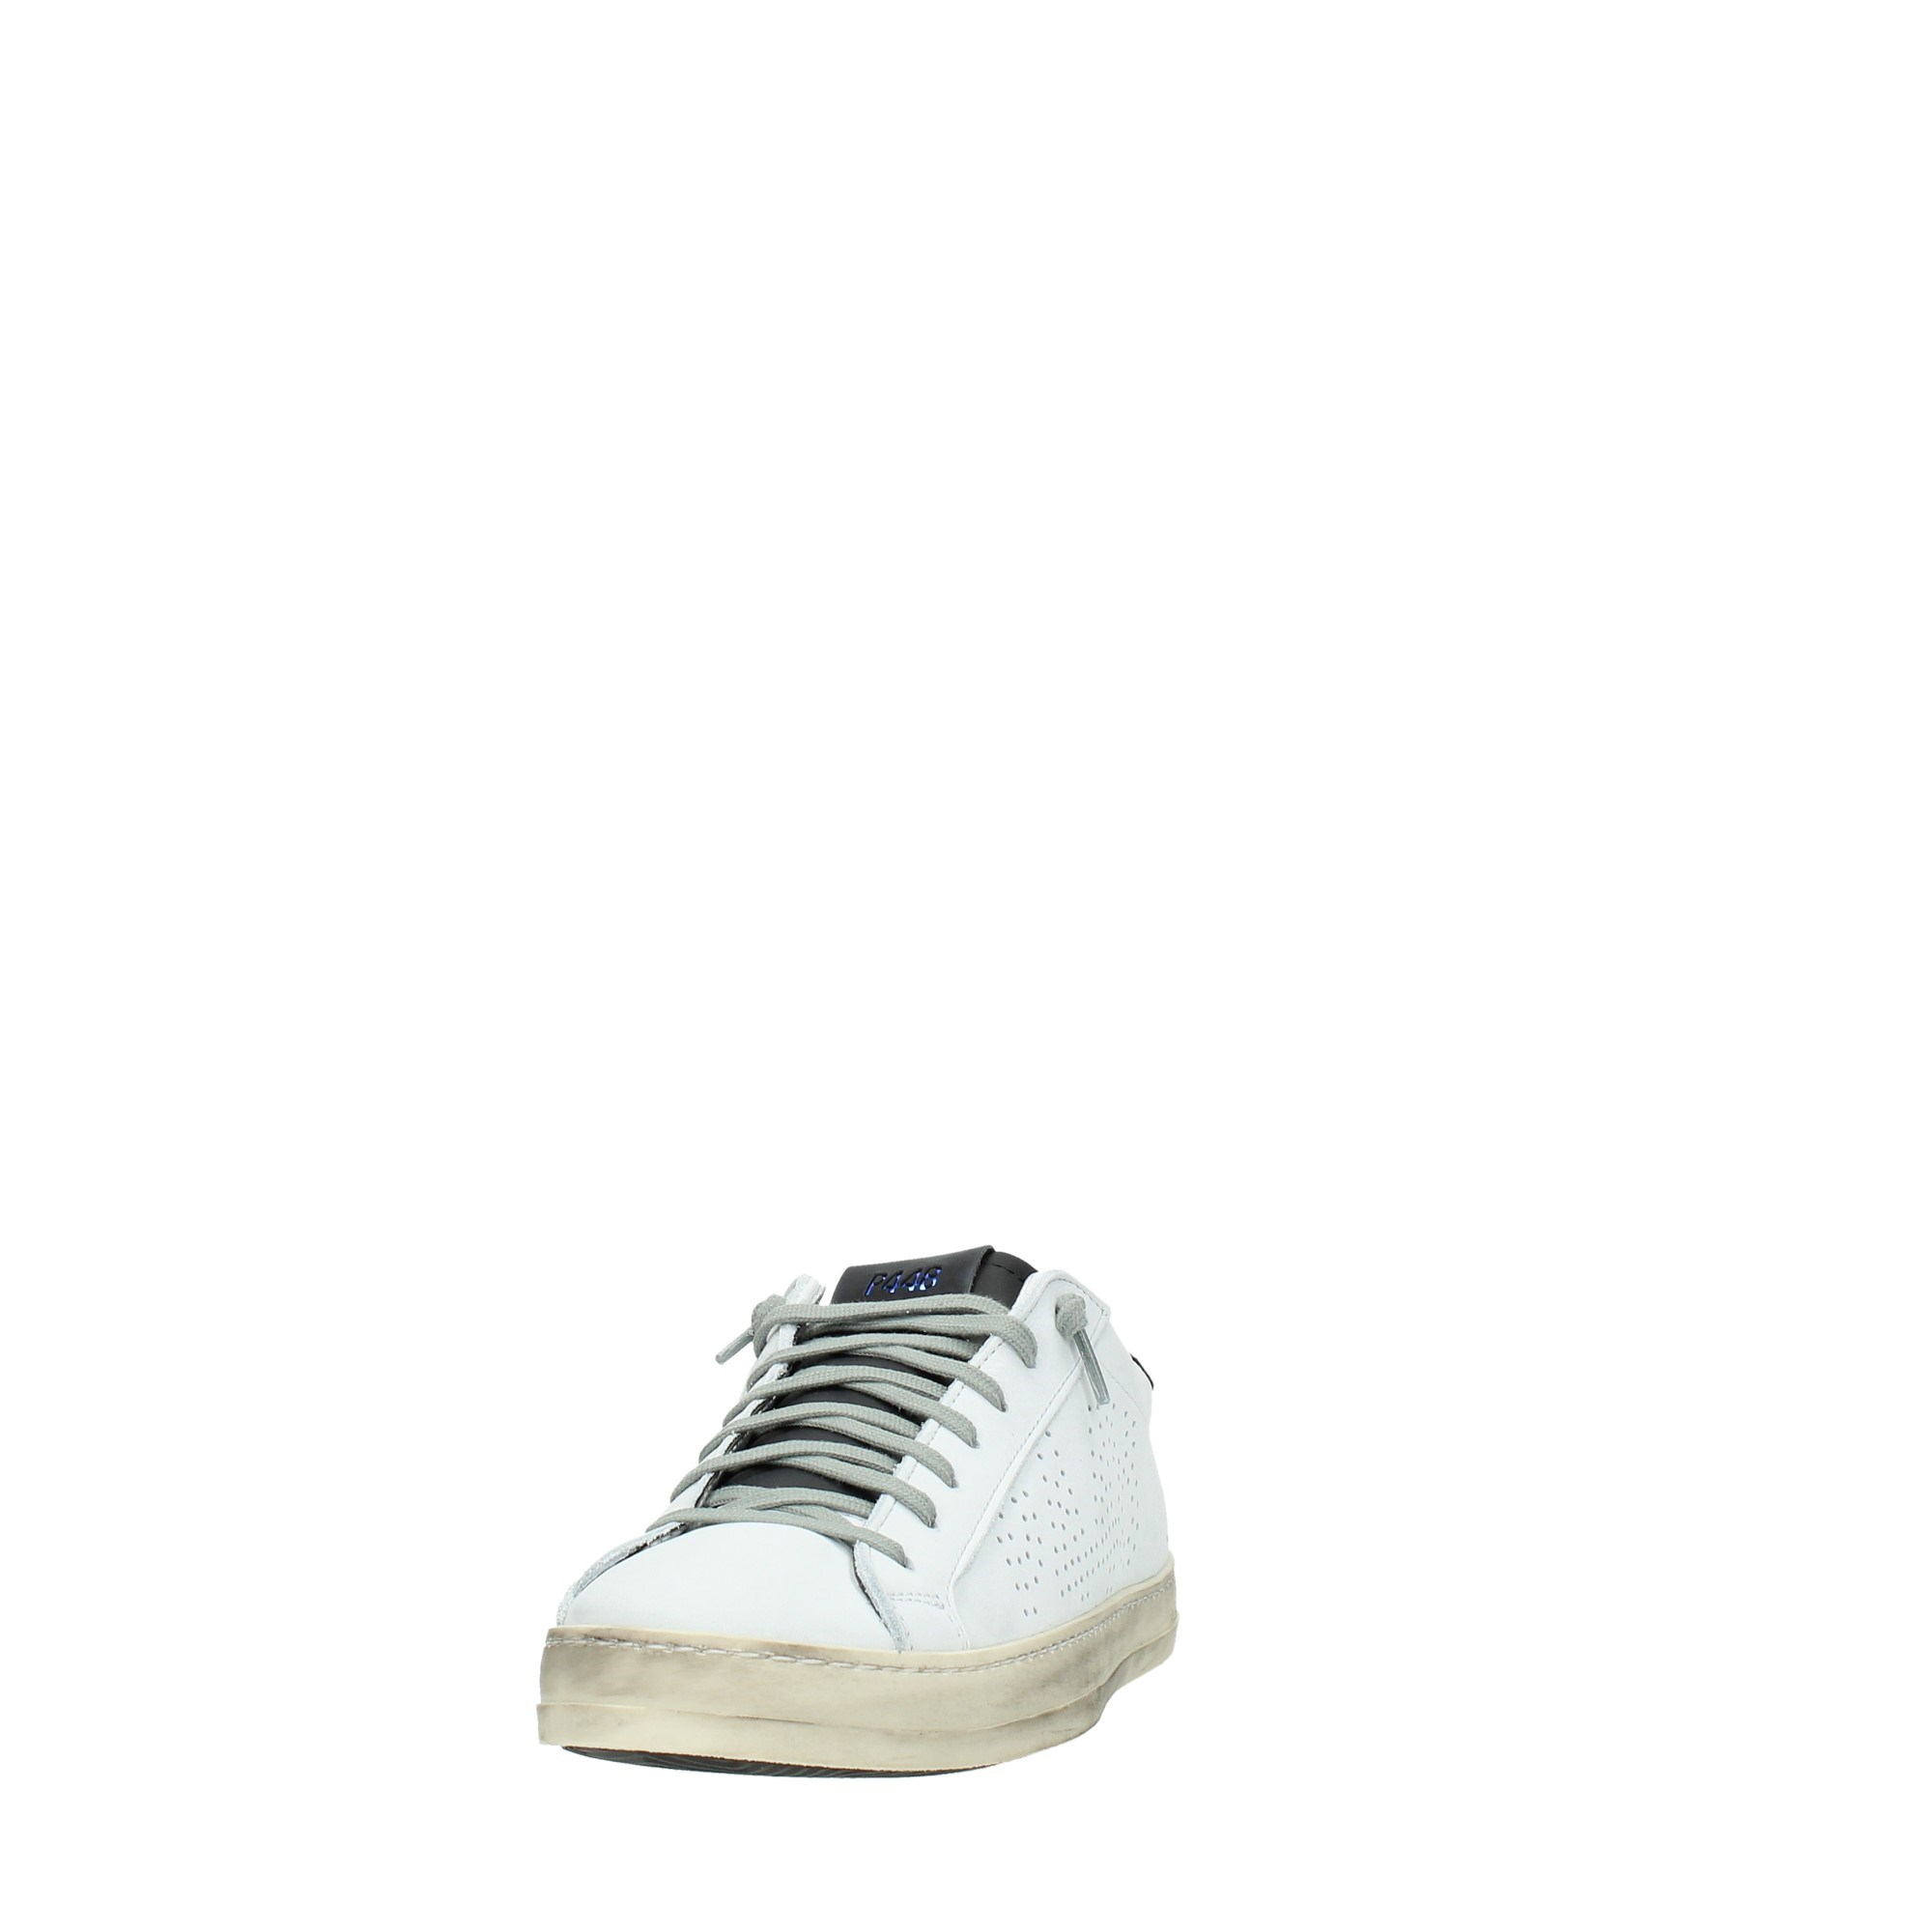 P448 Shoes Man Sneakers White JHON WHITE/ORA